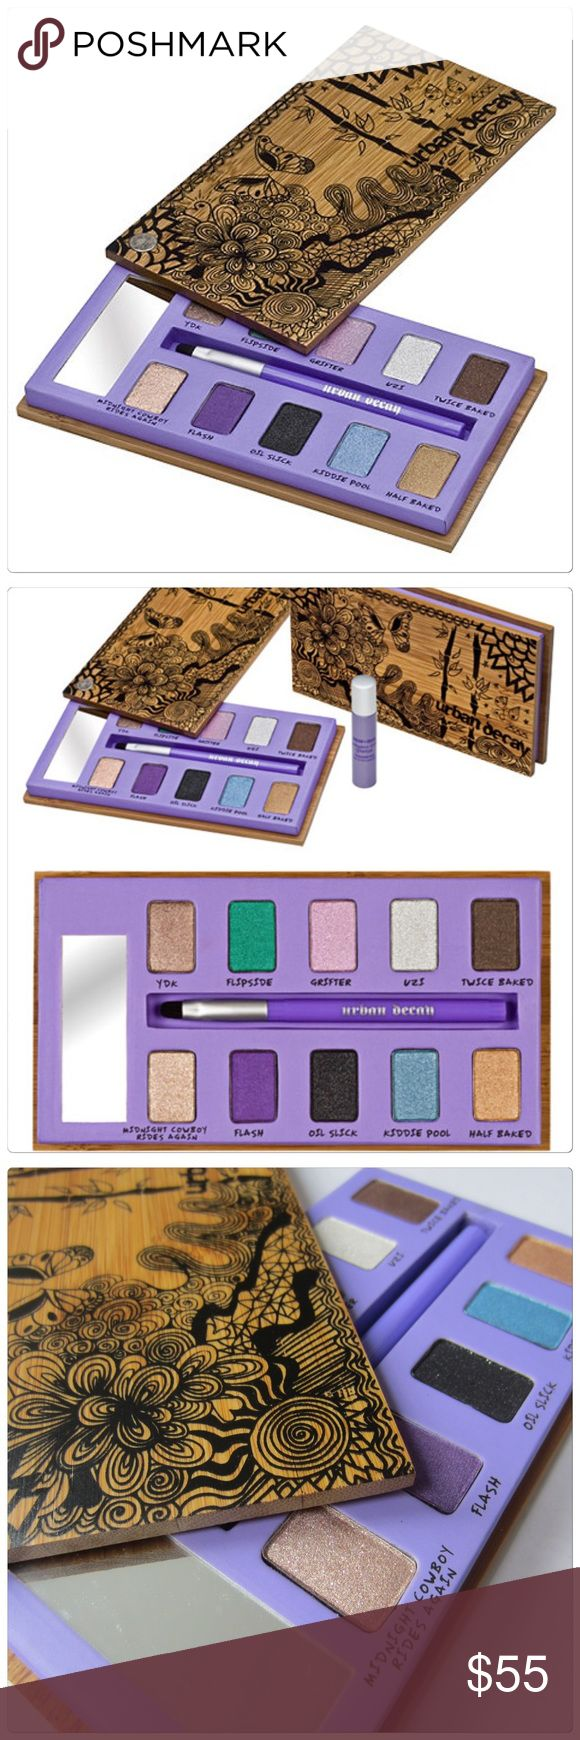 Urban Decay Sustainable shadow box + primer Urban Decay Sustainable shadow box. Packaged in a unique wooden box. Comes with 10 eyeshadow shades. Includes a travel size primer potion and brush. Brand new. Urban Decay Makeup Eyeshadow